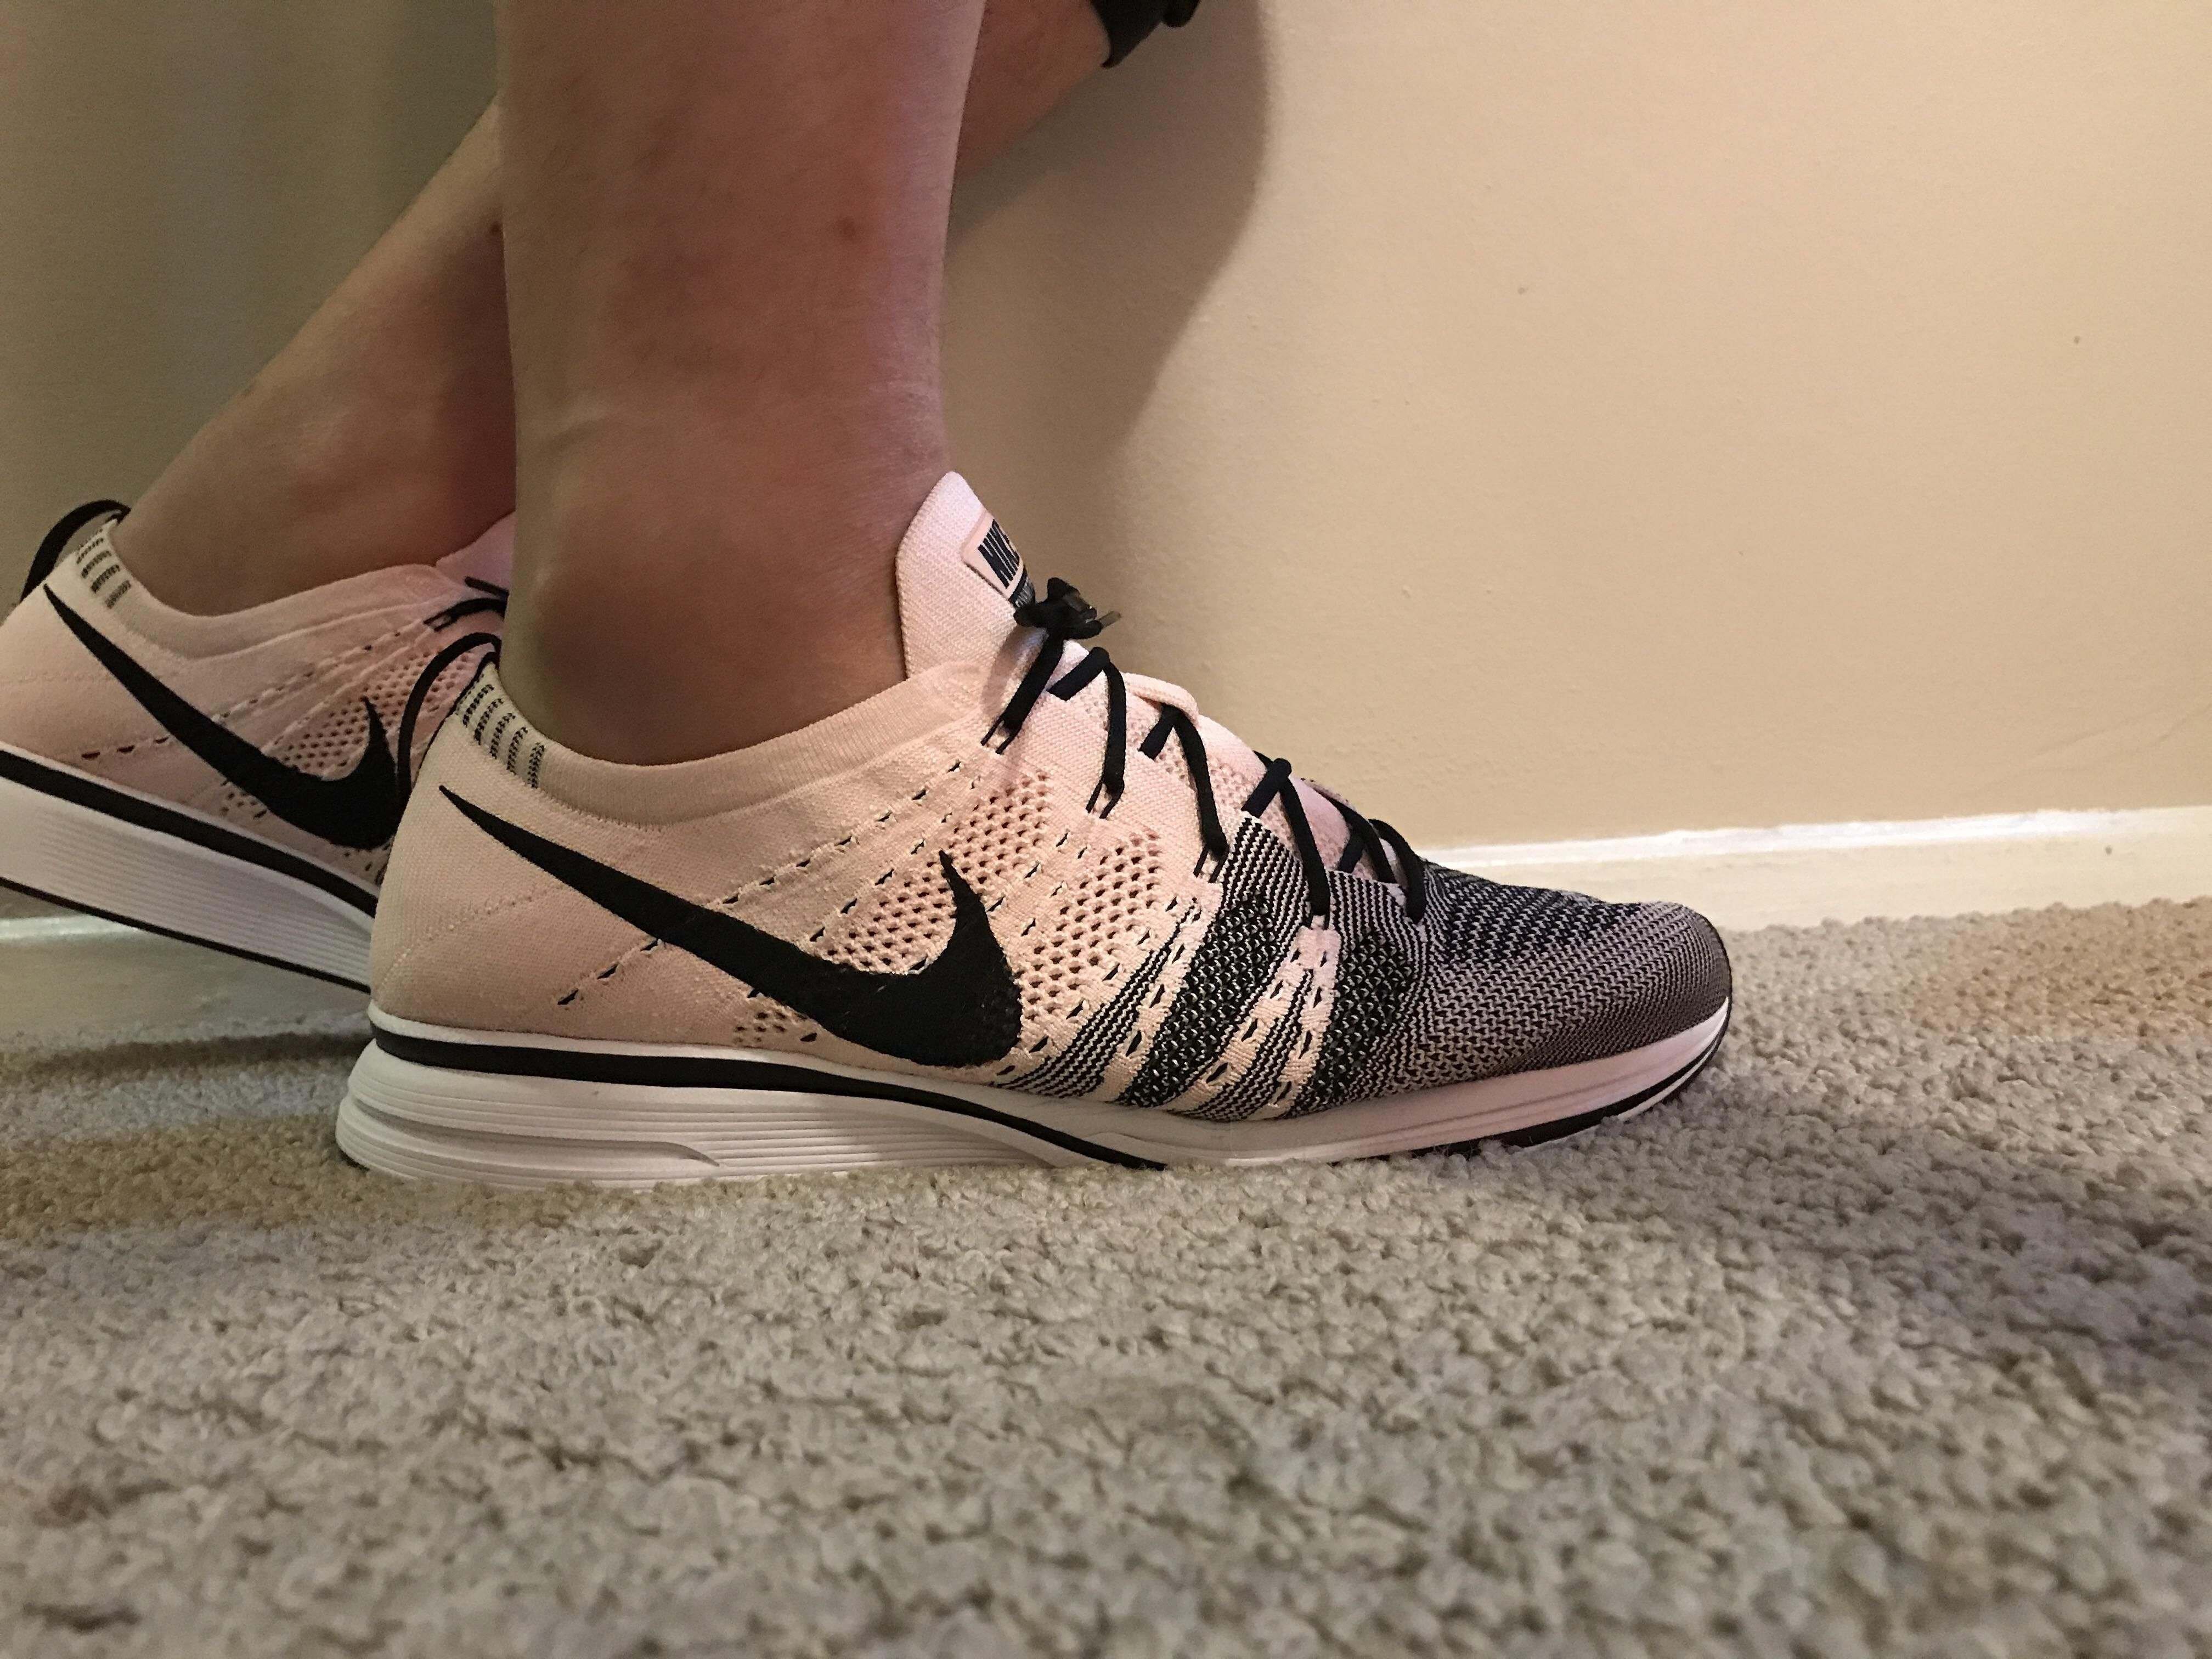 Nike Flyknit Trainer Sunset Tint with black laces  670c66f9a